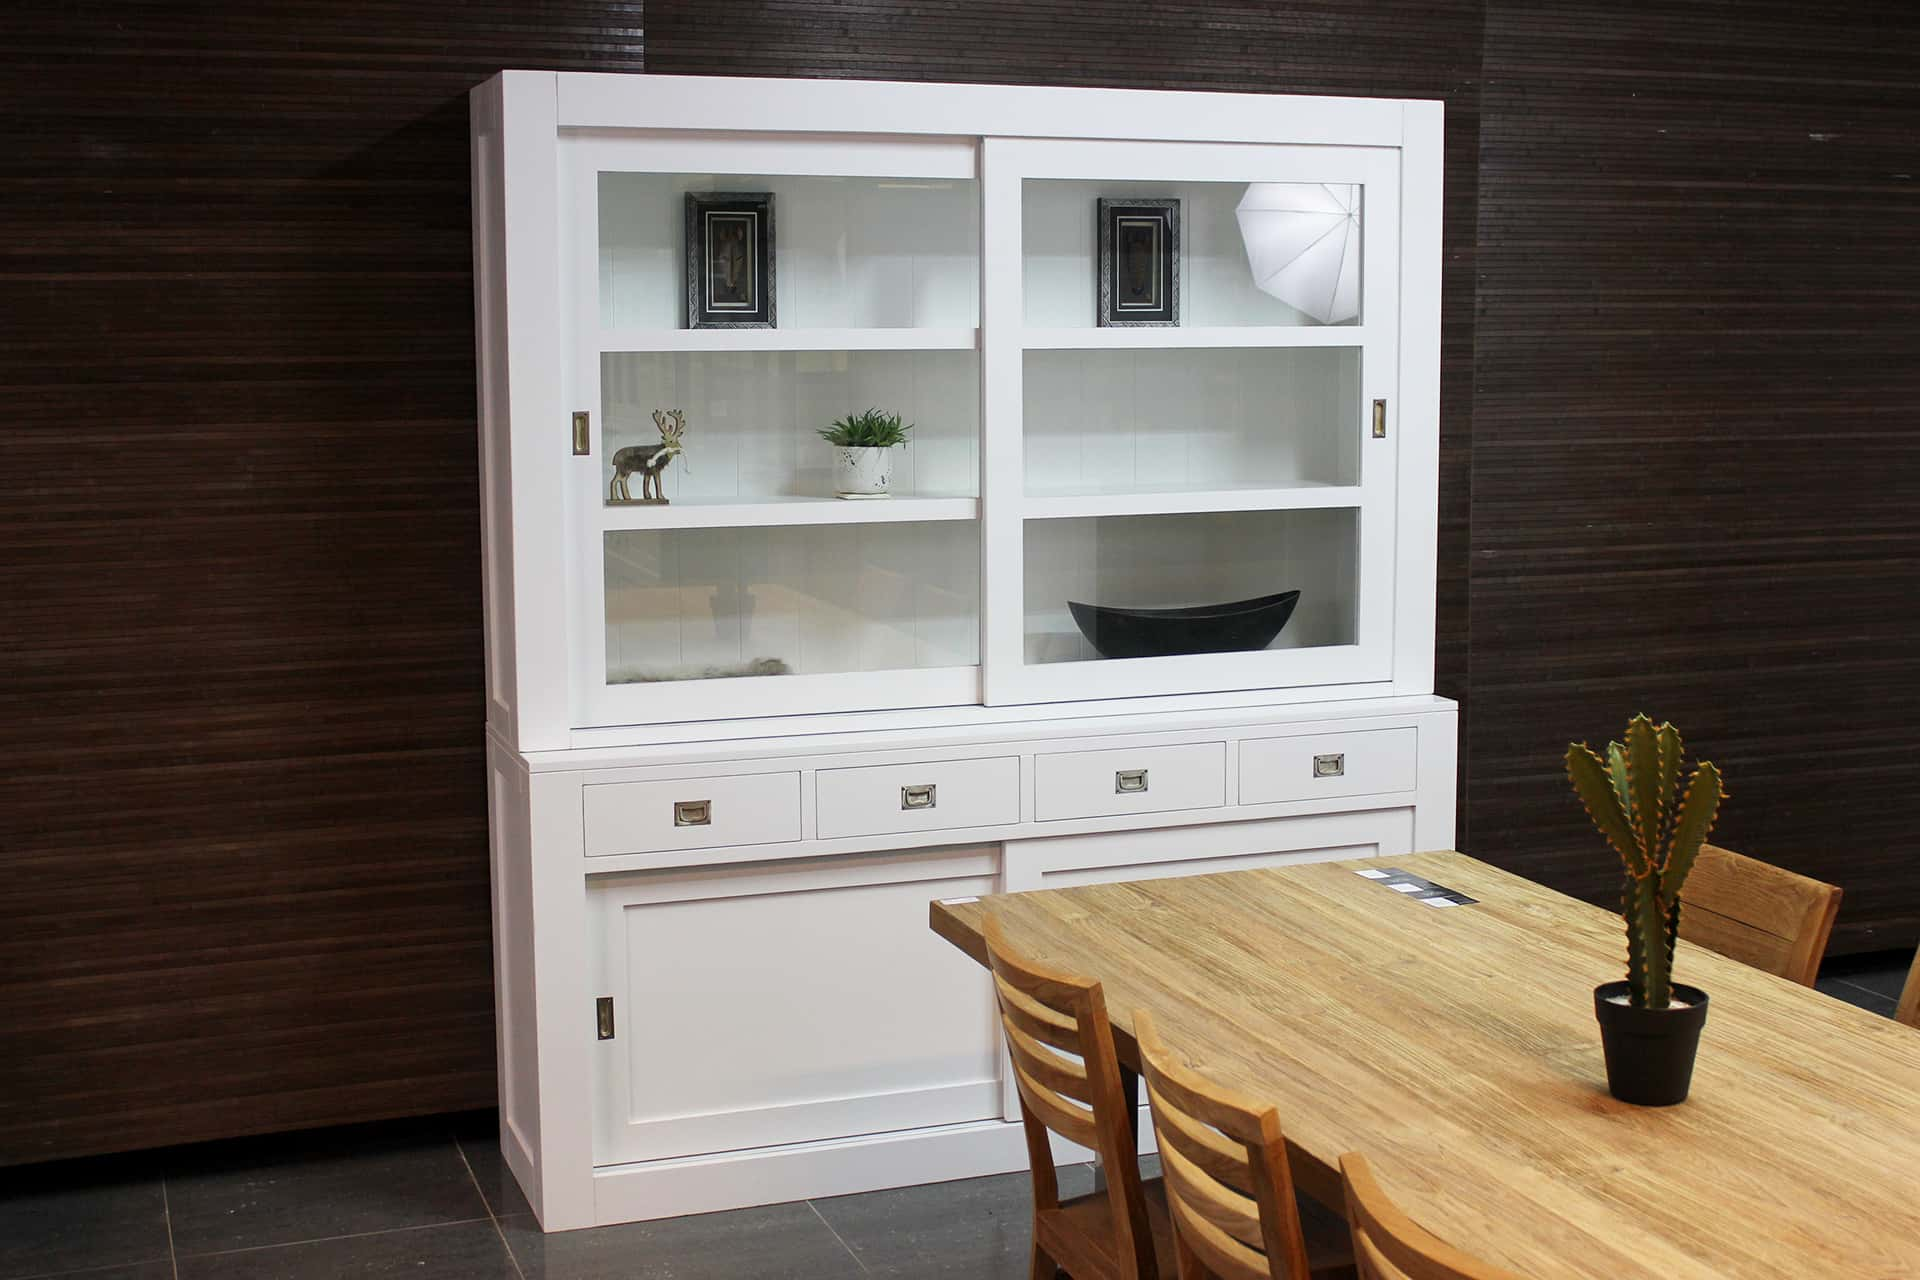 Corak 200L SW | white modern buffet cabinet in RAL 9016. Designer buffet cabinets & display cabinets for sleek, industrial or modern interiors - TEAK2 furniture.